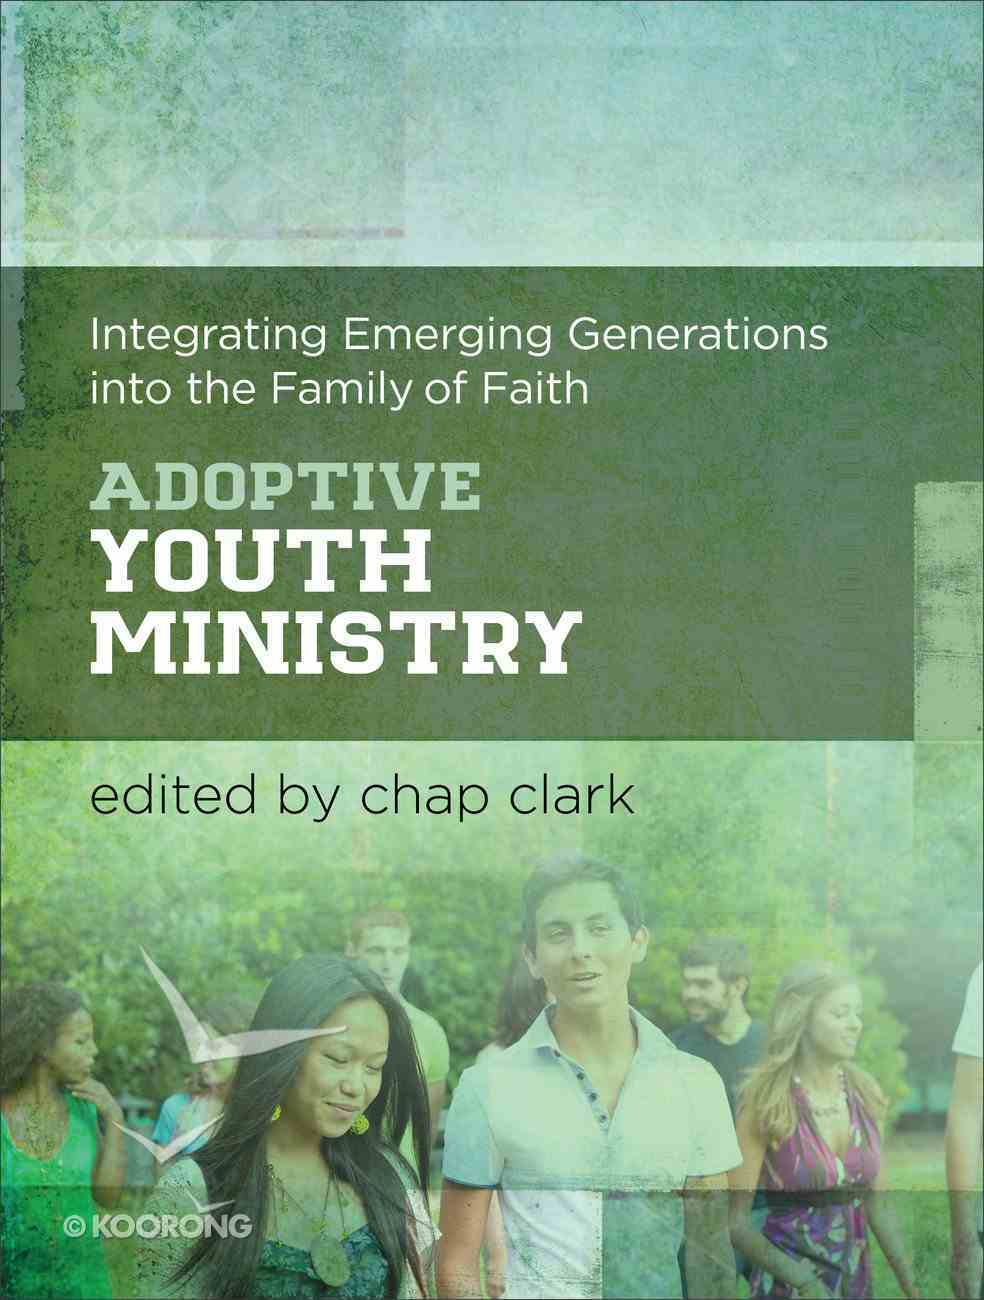 Adoptive Youth Ministry: Integrating Emerging Generations Into the Family of Faith Paperback